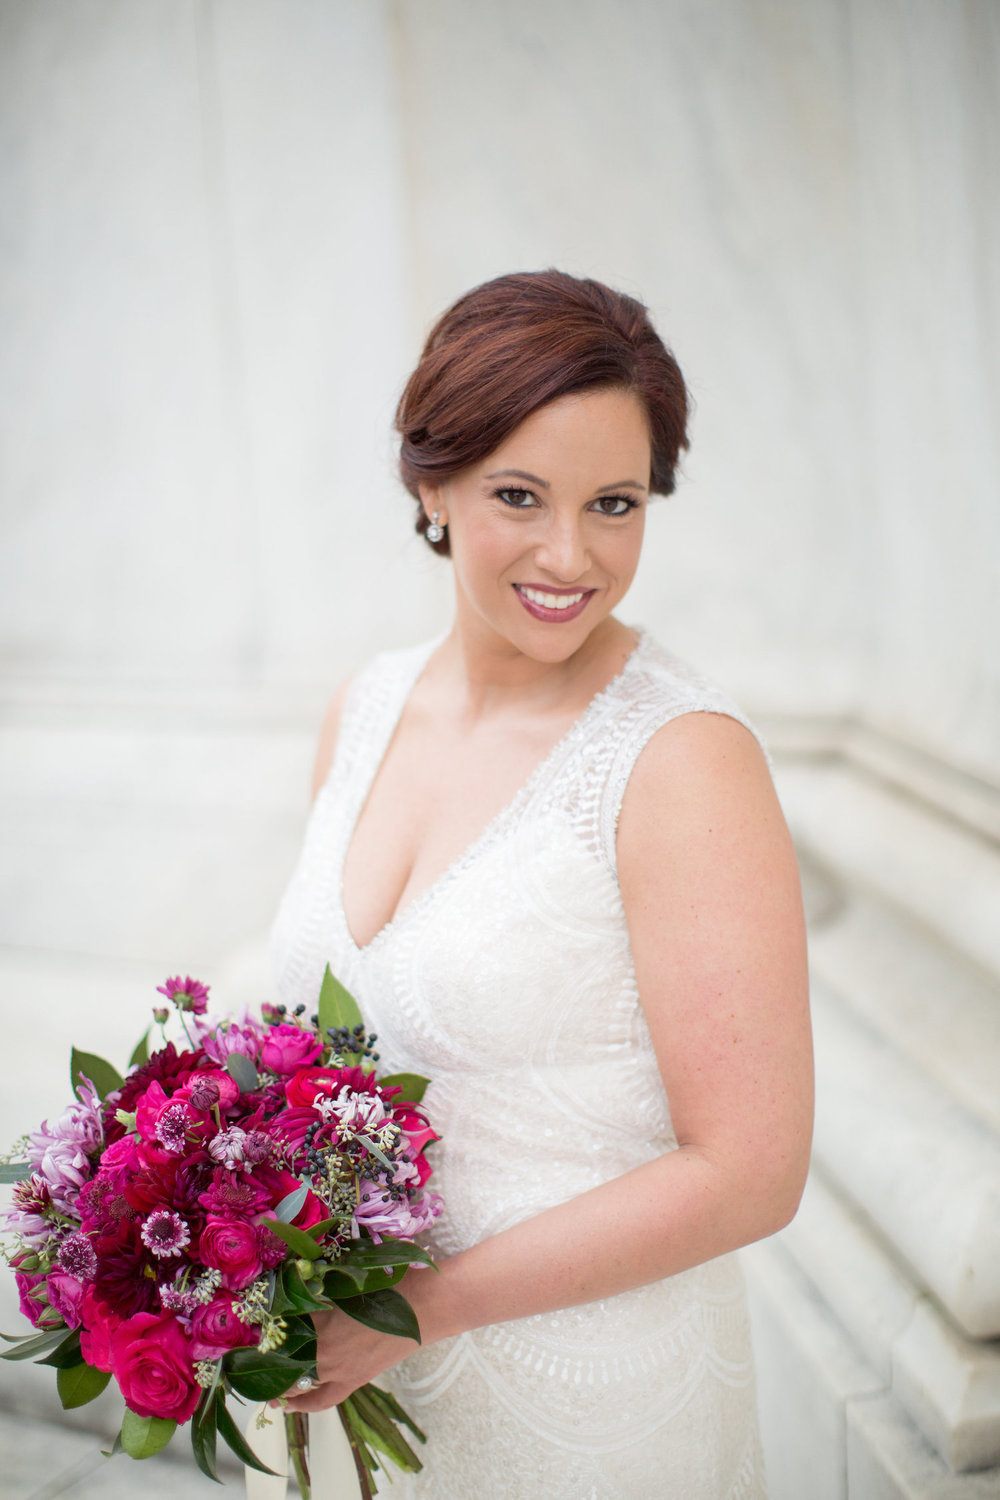 Bridal Portraits District Winery Wedding Sincerely Pete Events Olivia Jacob Photography.jpg